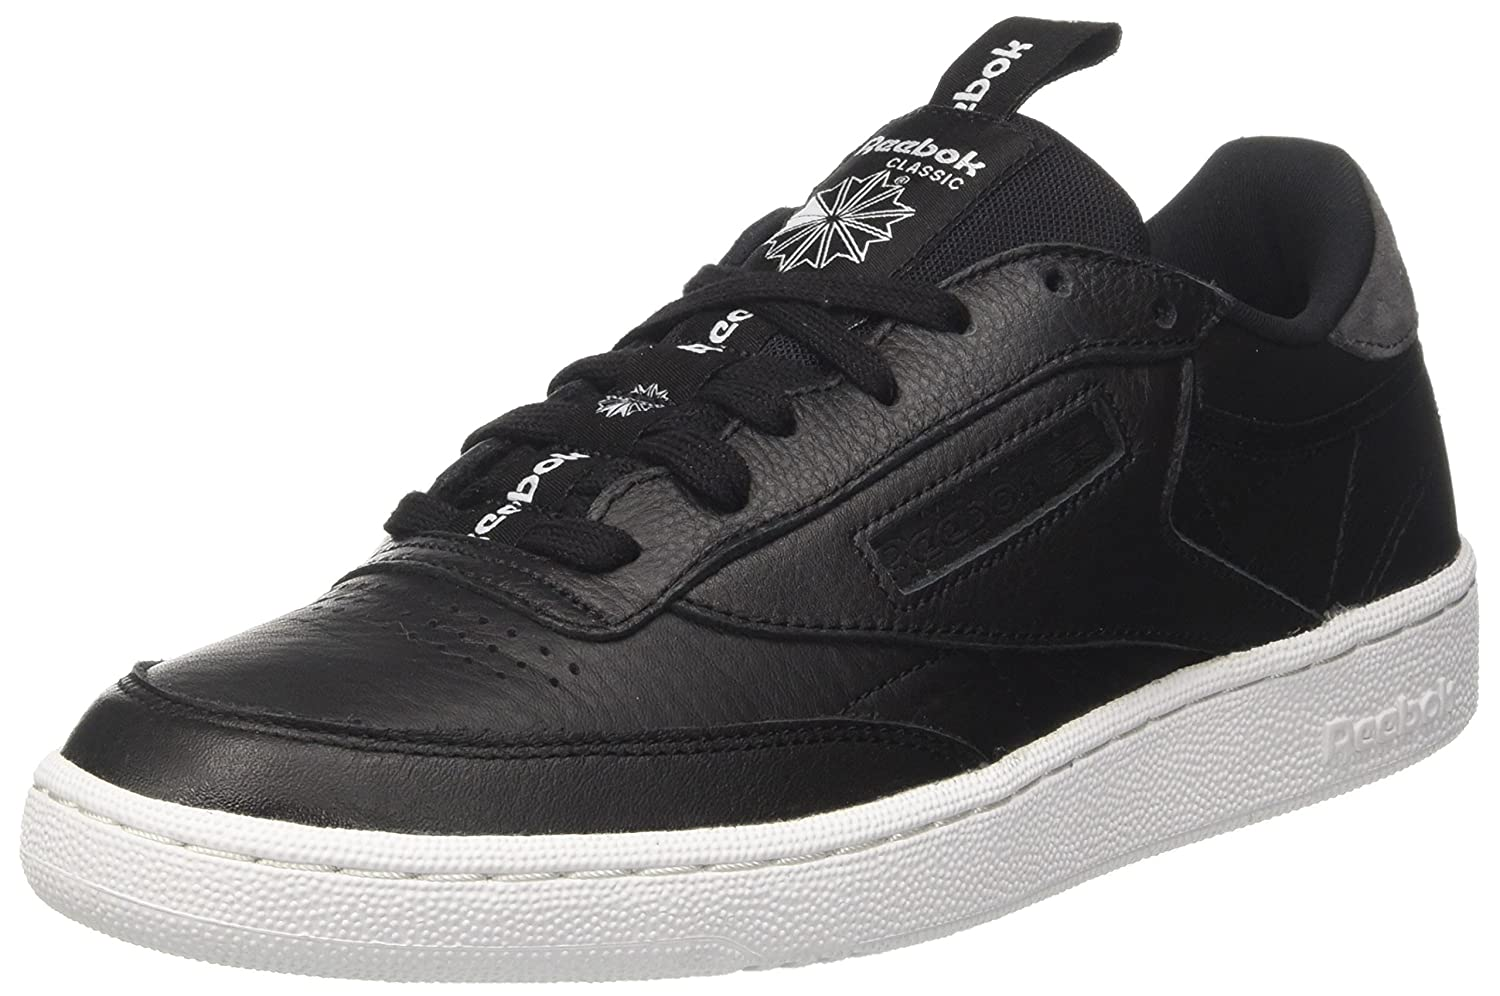 3b7adac1654 Reebok Men s Club C 85 It Black Coal White Sneakers - 11 UK India (45.5  EU)(12 US) (BS6211)  Buy Online at Low Prices in India - Amazon.in